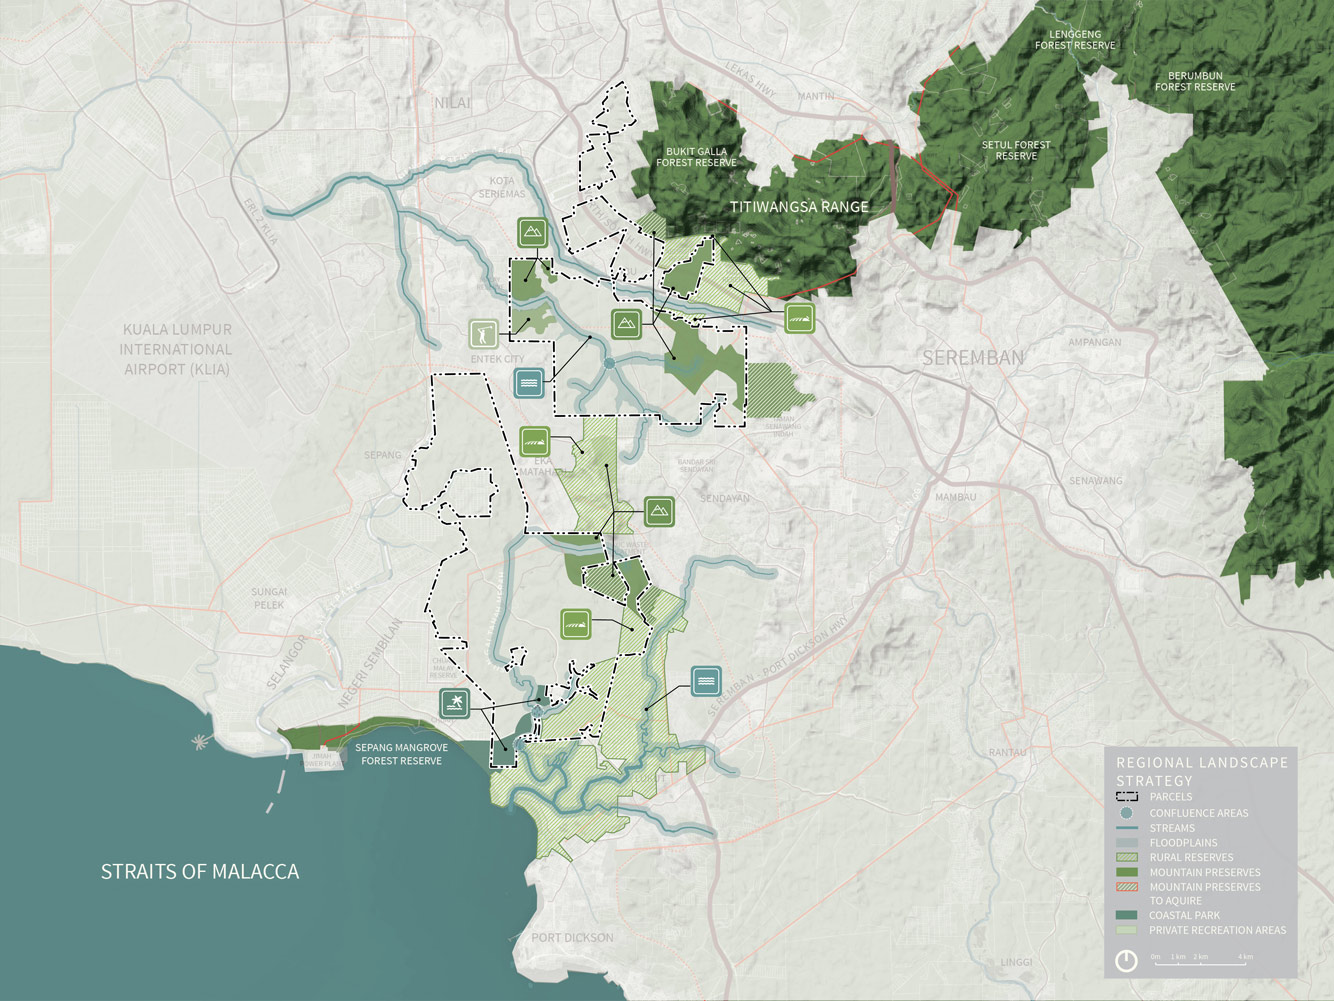 Malaysia-Vision-Valley_Landscape-Strategy_Regional-Open-Space-Connections_Klopfer-Martin.jpg